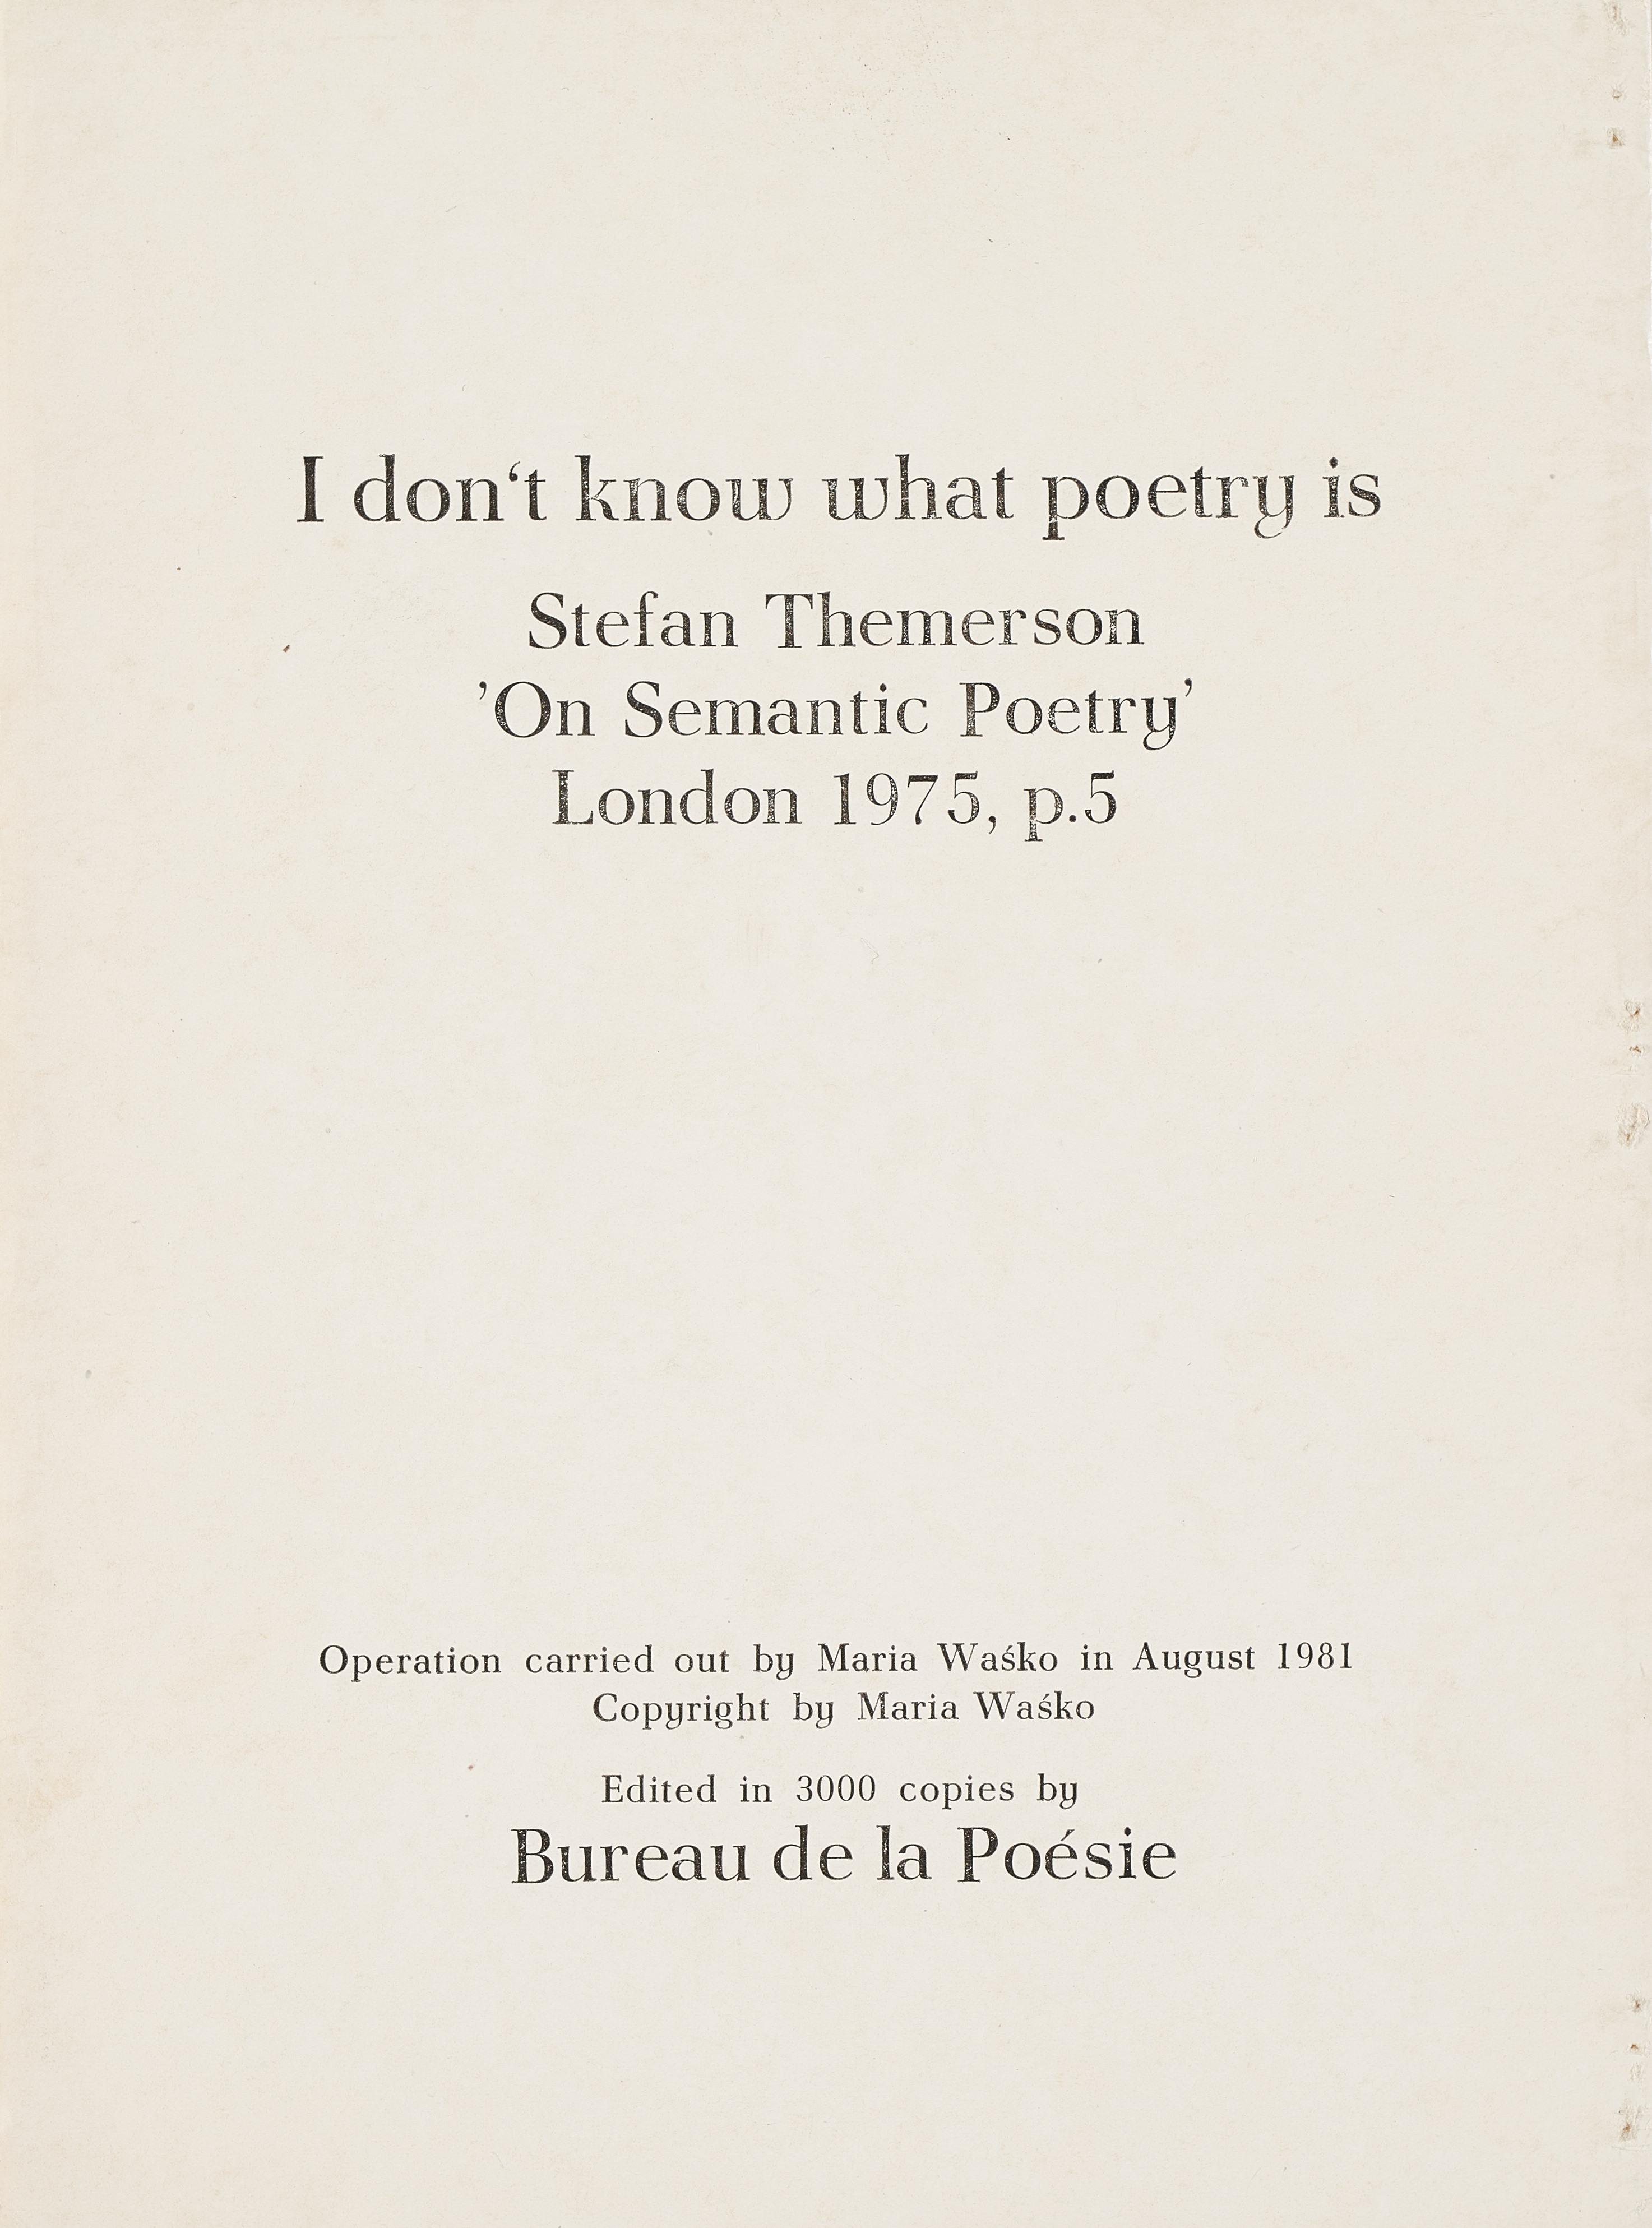 Stefan Themerson On Semantic Poetry, 1981 r.